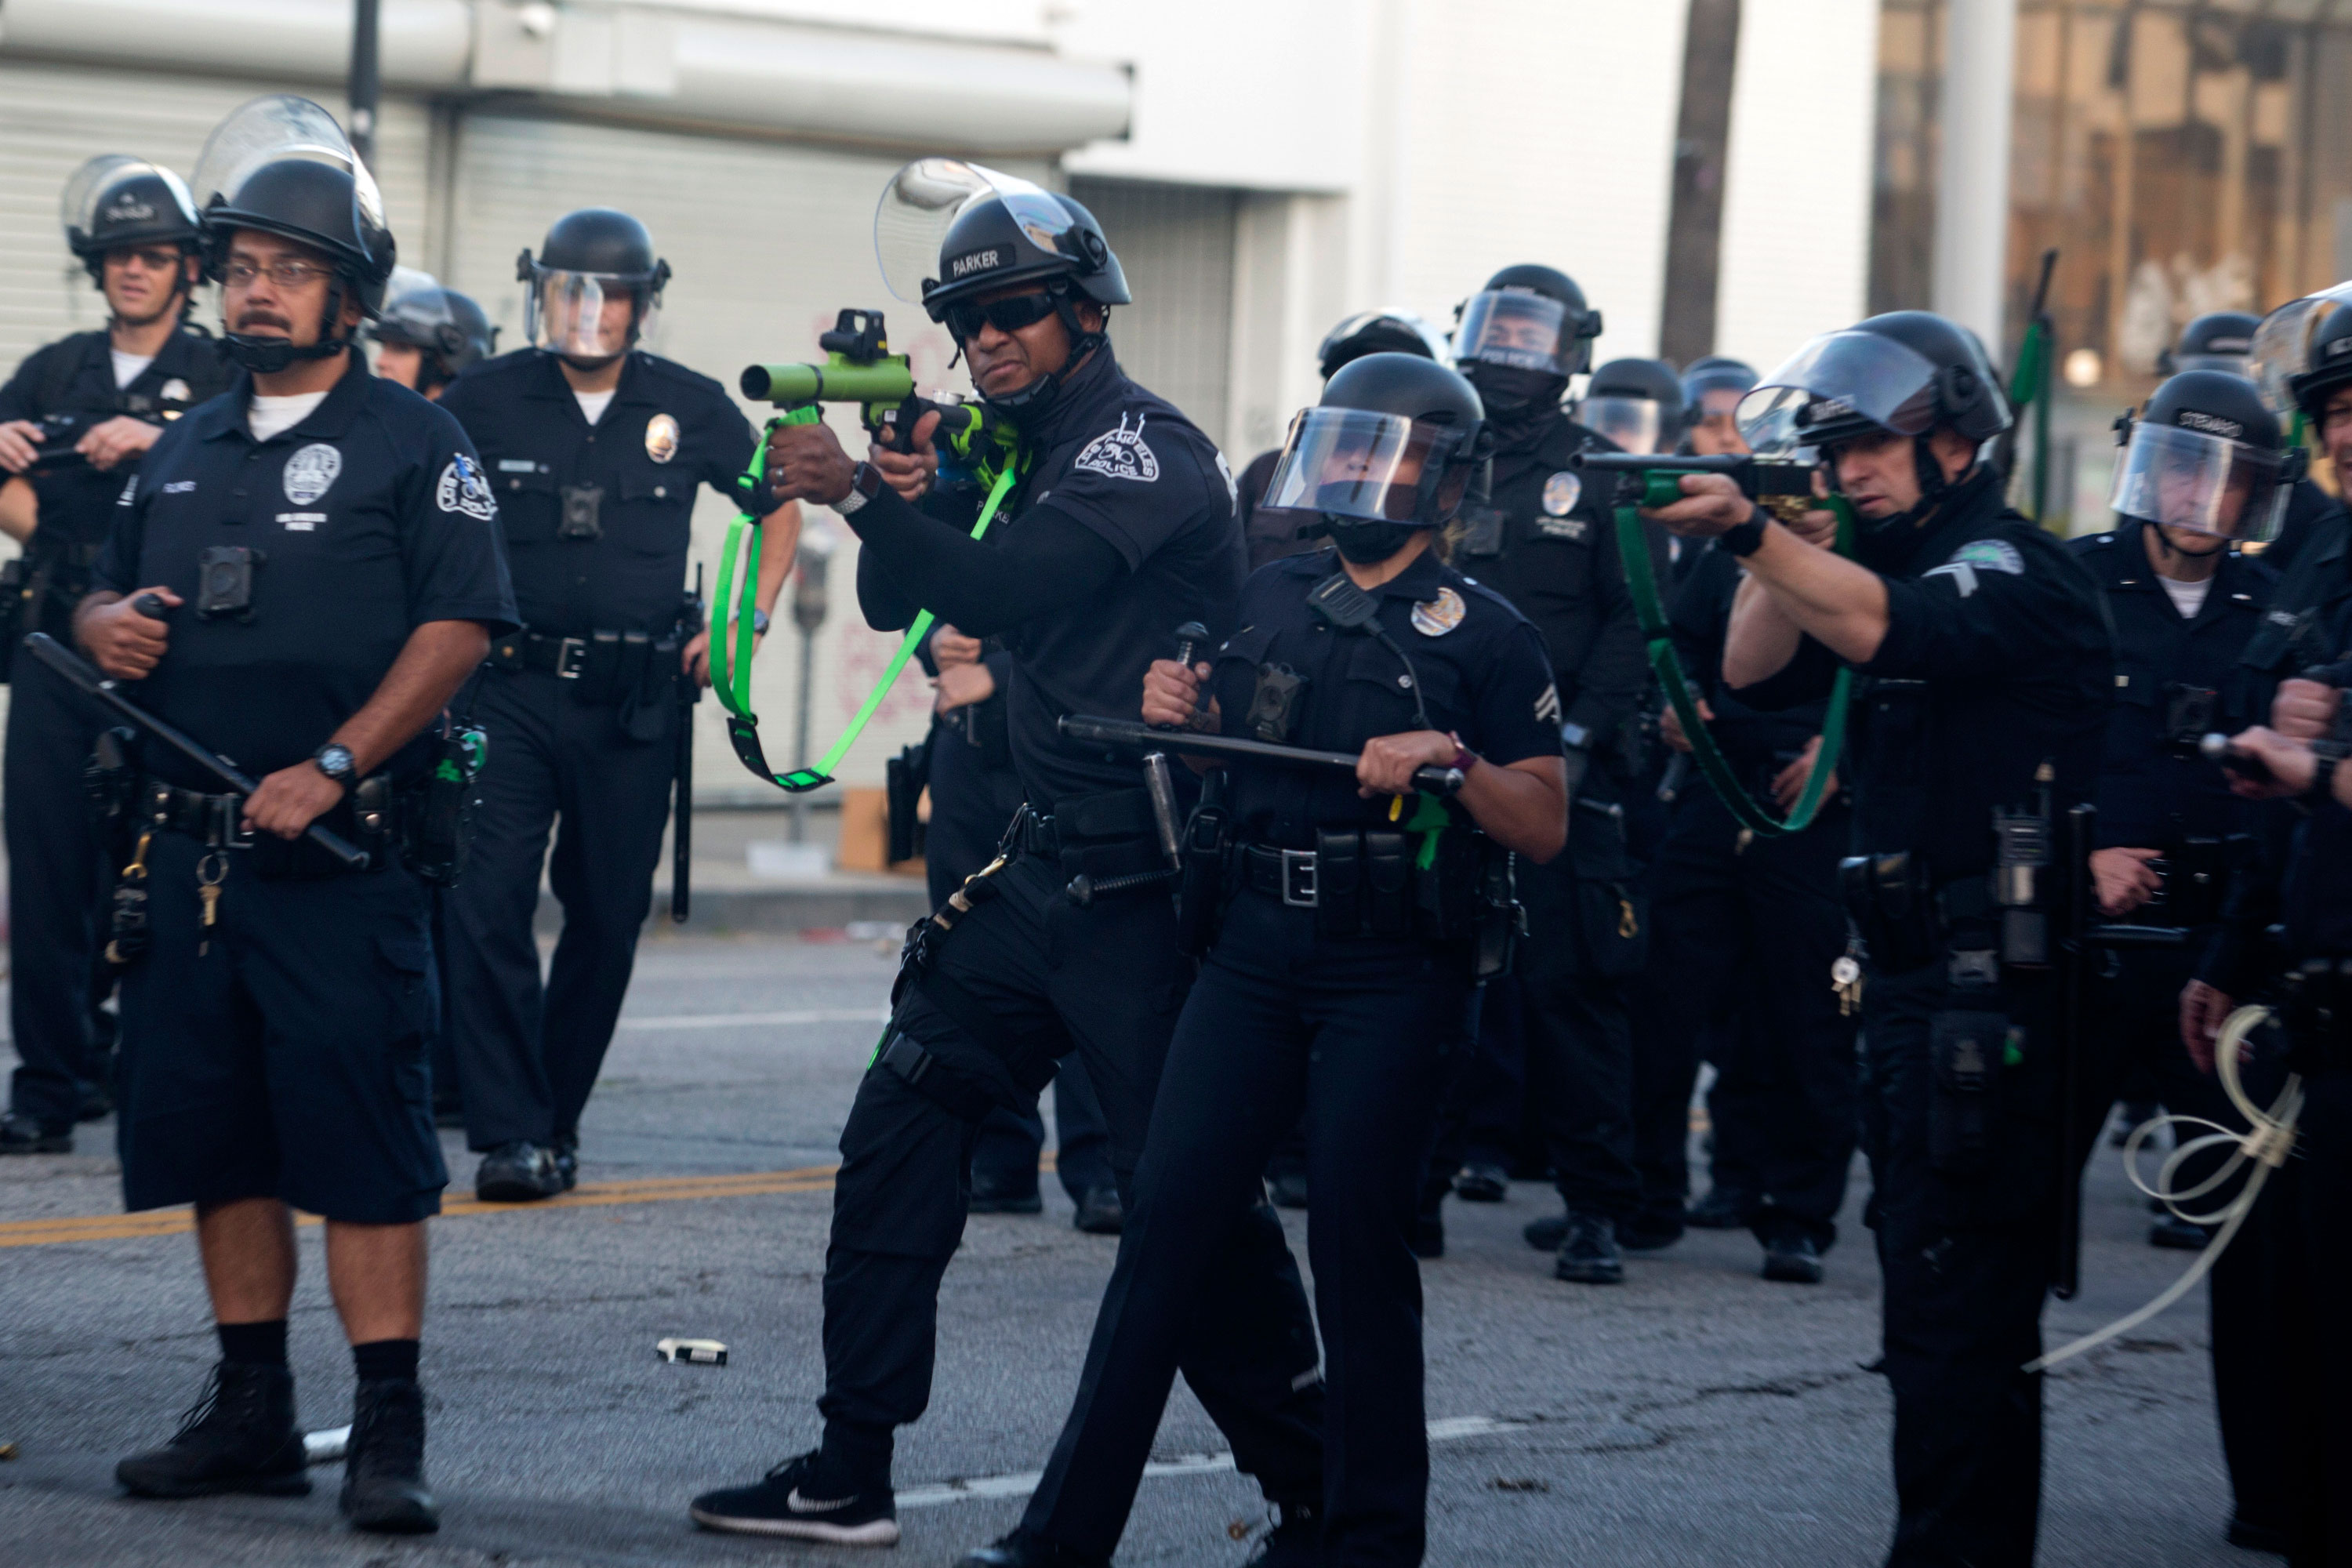 Police officers fire rubber bullets during a protest on Saturday, May 30 in Los Angeles.